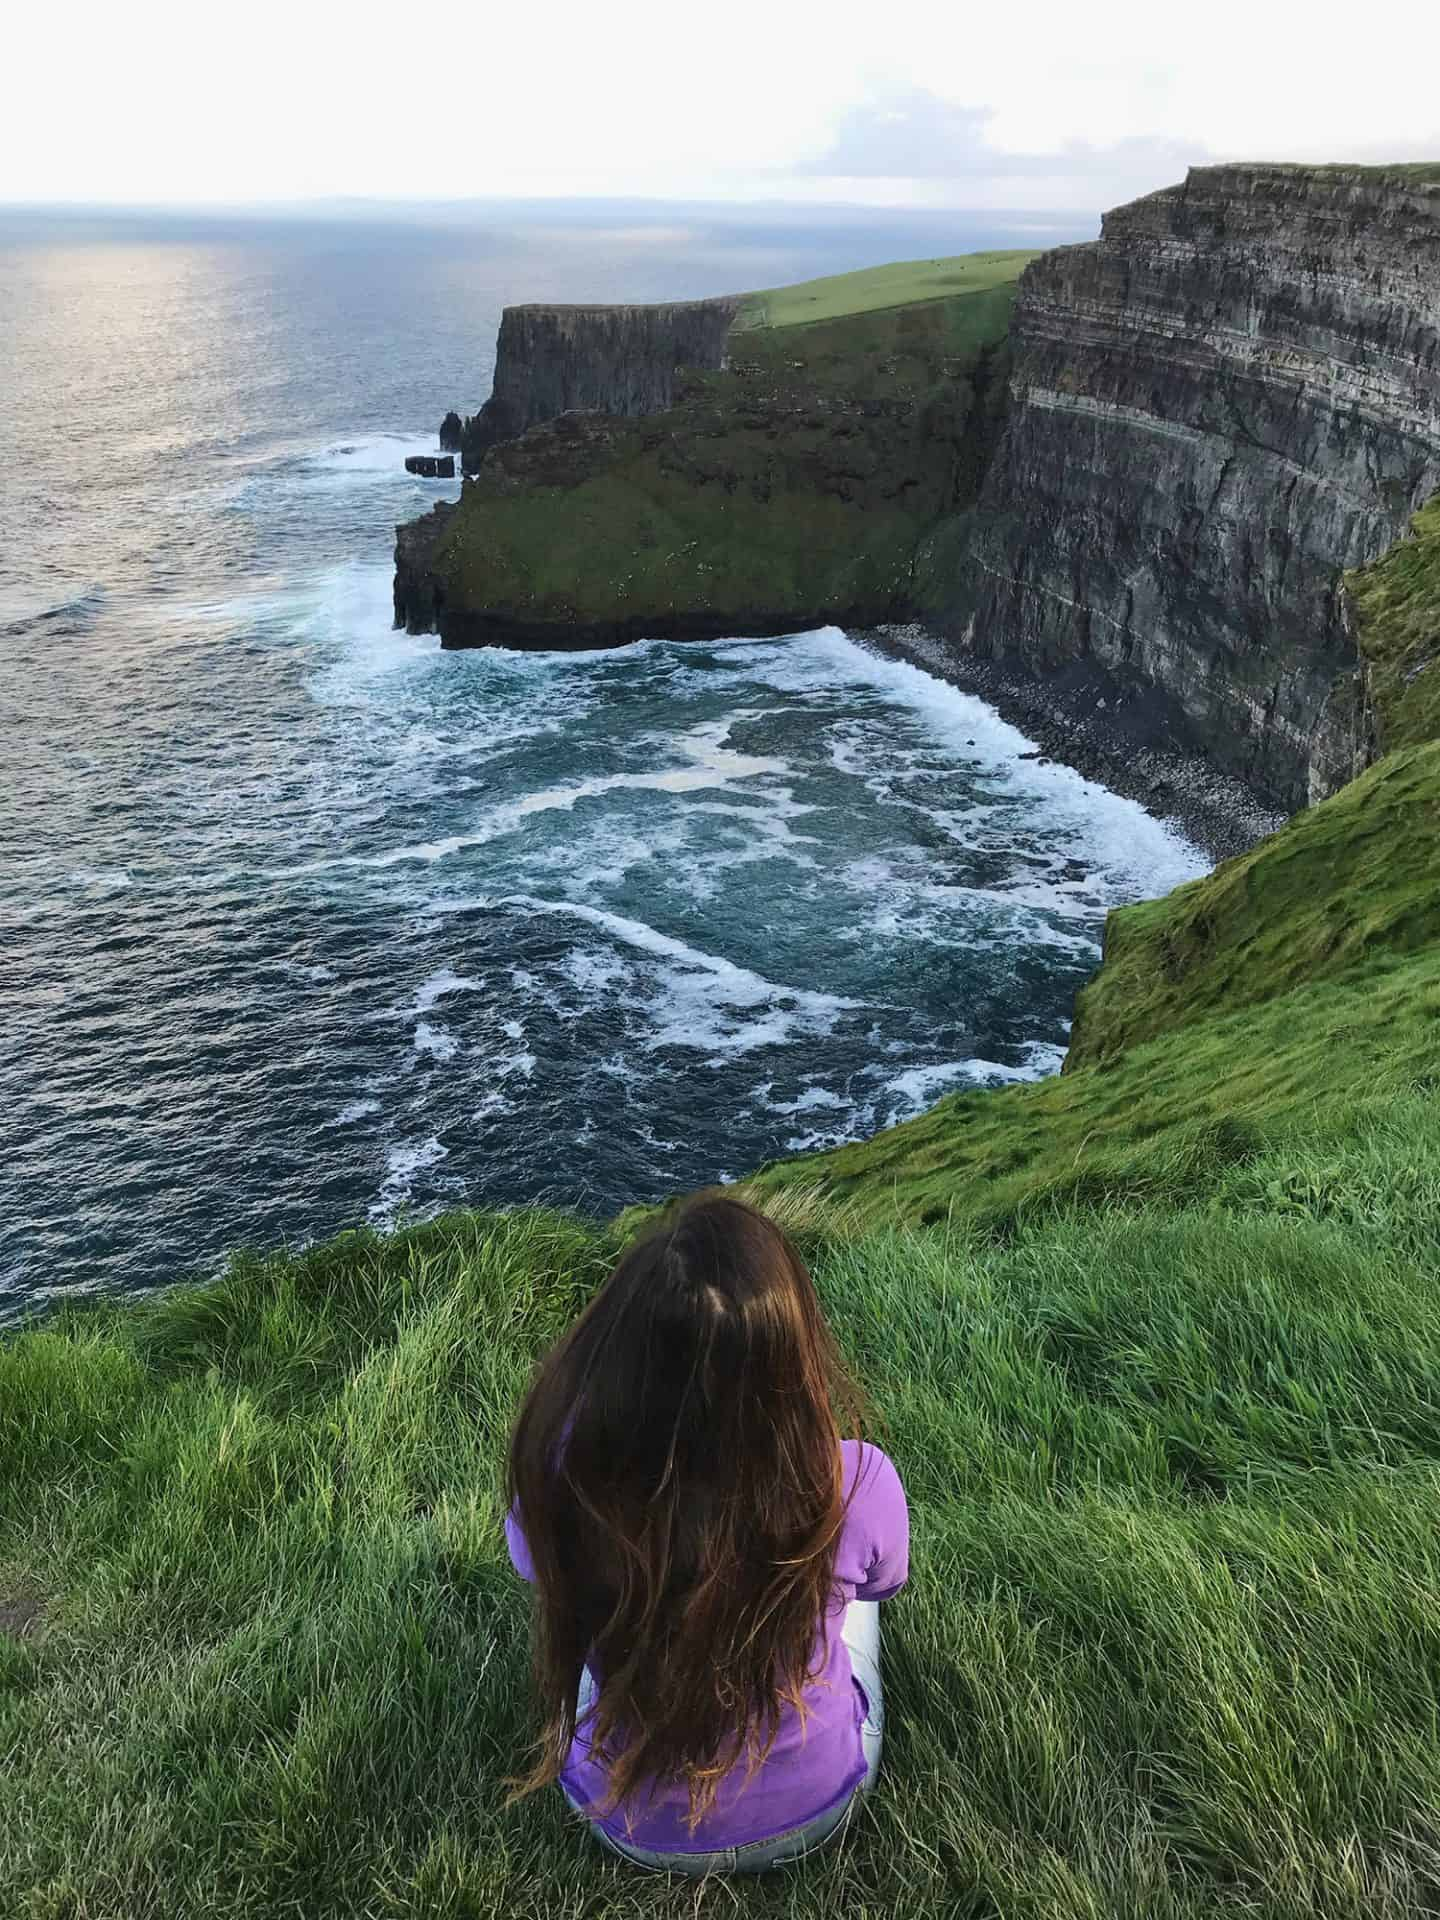 The Cliffs of Moher is one of the most iconic stops for your 2 week Ireland road trip itinerary